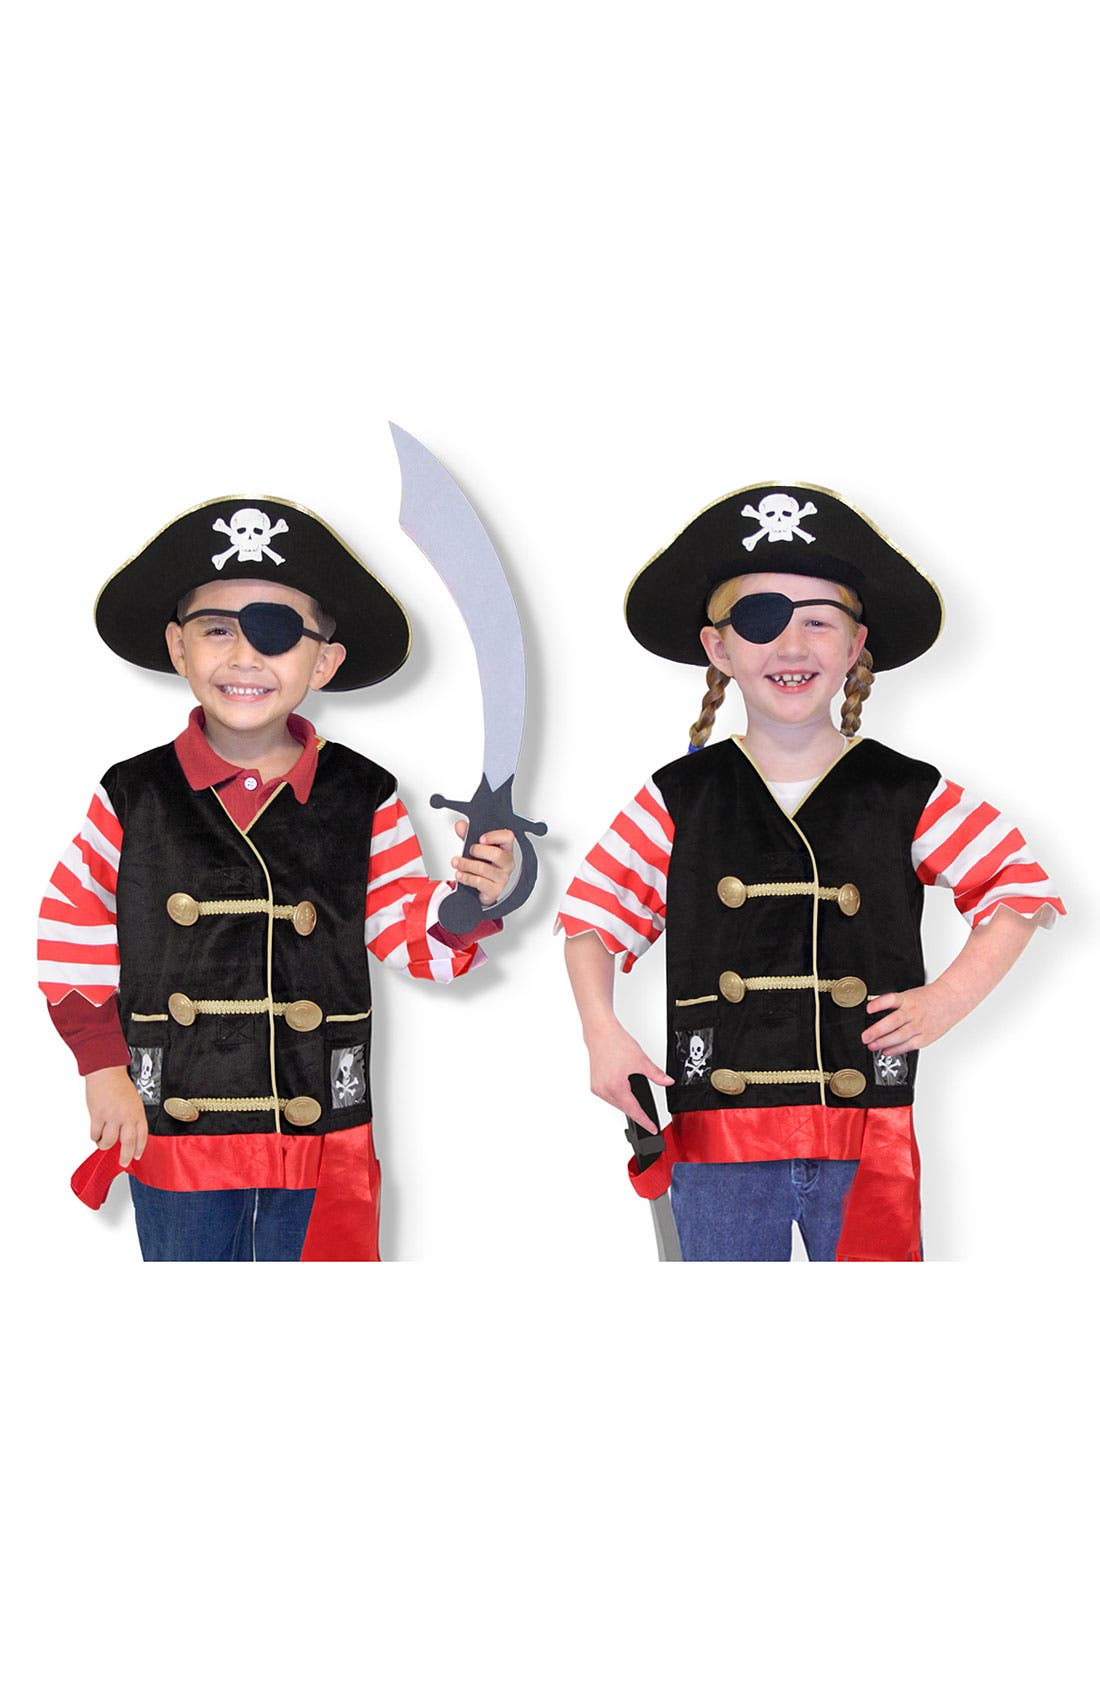 Alternate Image 1 Selected - Melissa & Doug Pirate Costume (Toddler)